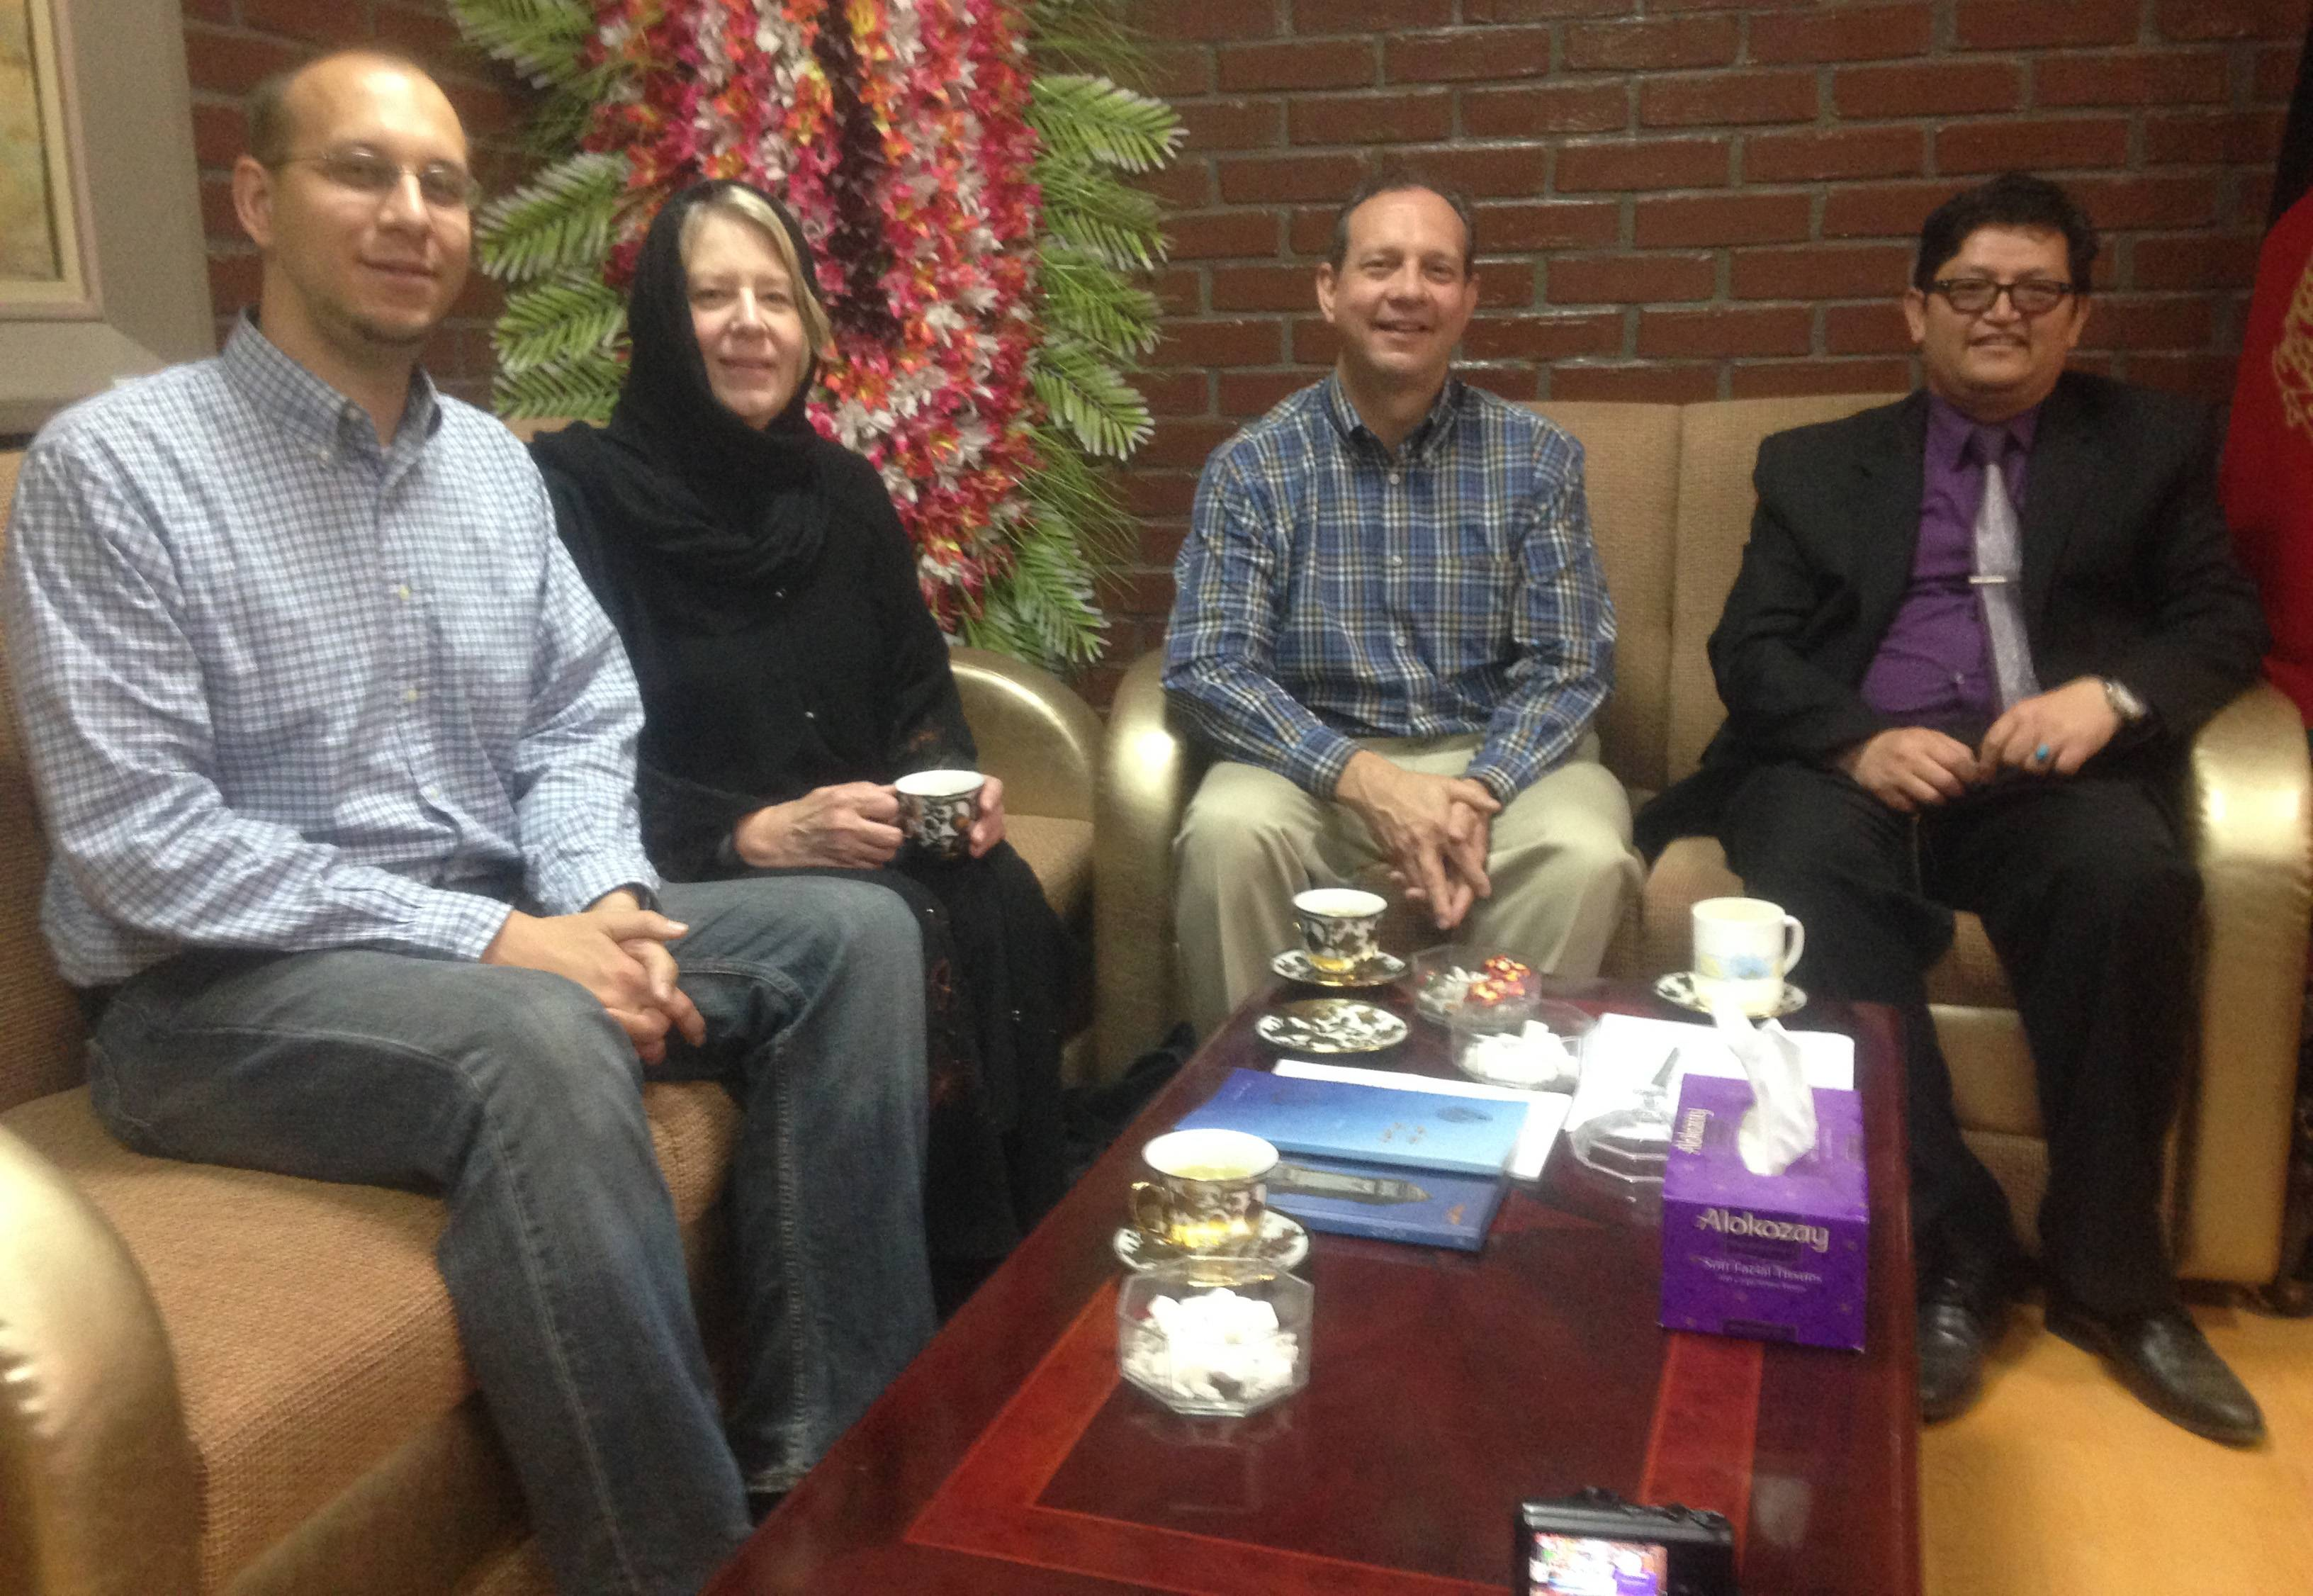 This photo taken on April 22, 2014, shows, from left, John Gabel, Betty Gabel and Gary Gabel, with Mohammad Hadi Hadayati, Kabul University's vice chancellor at Kabul University.